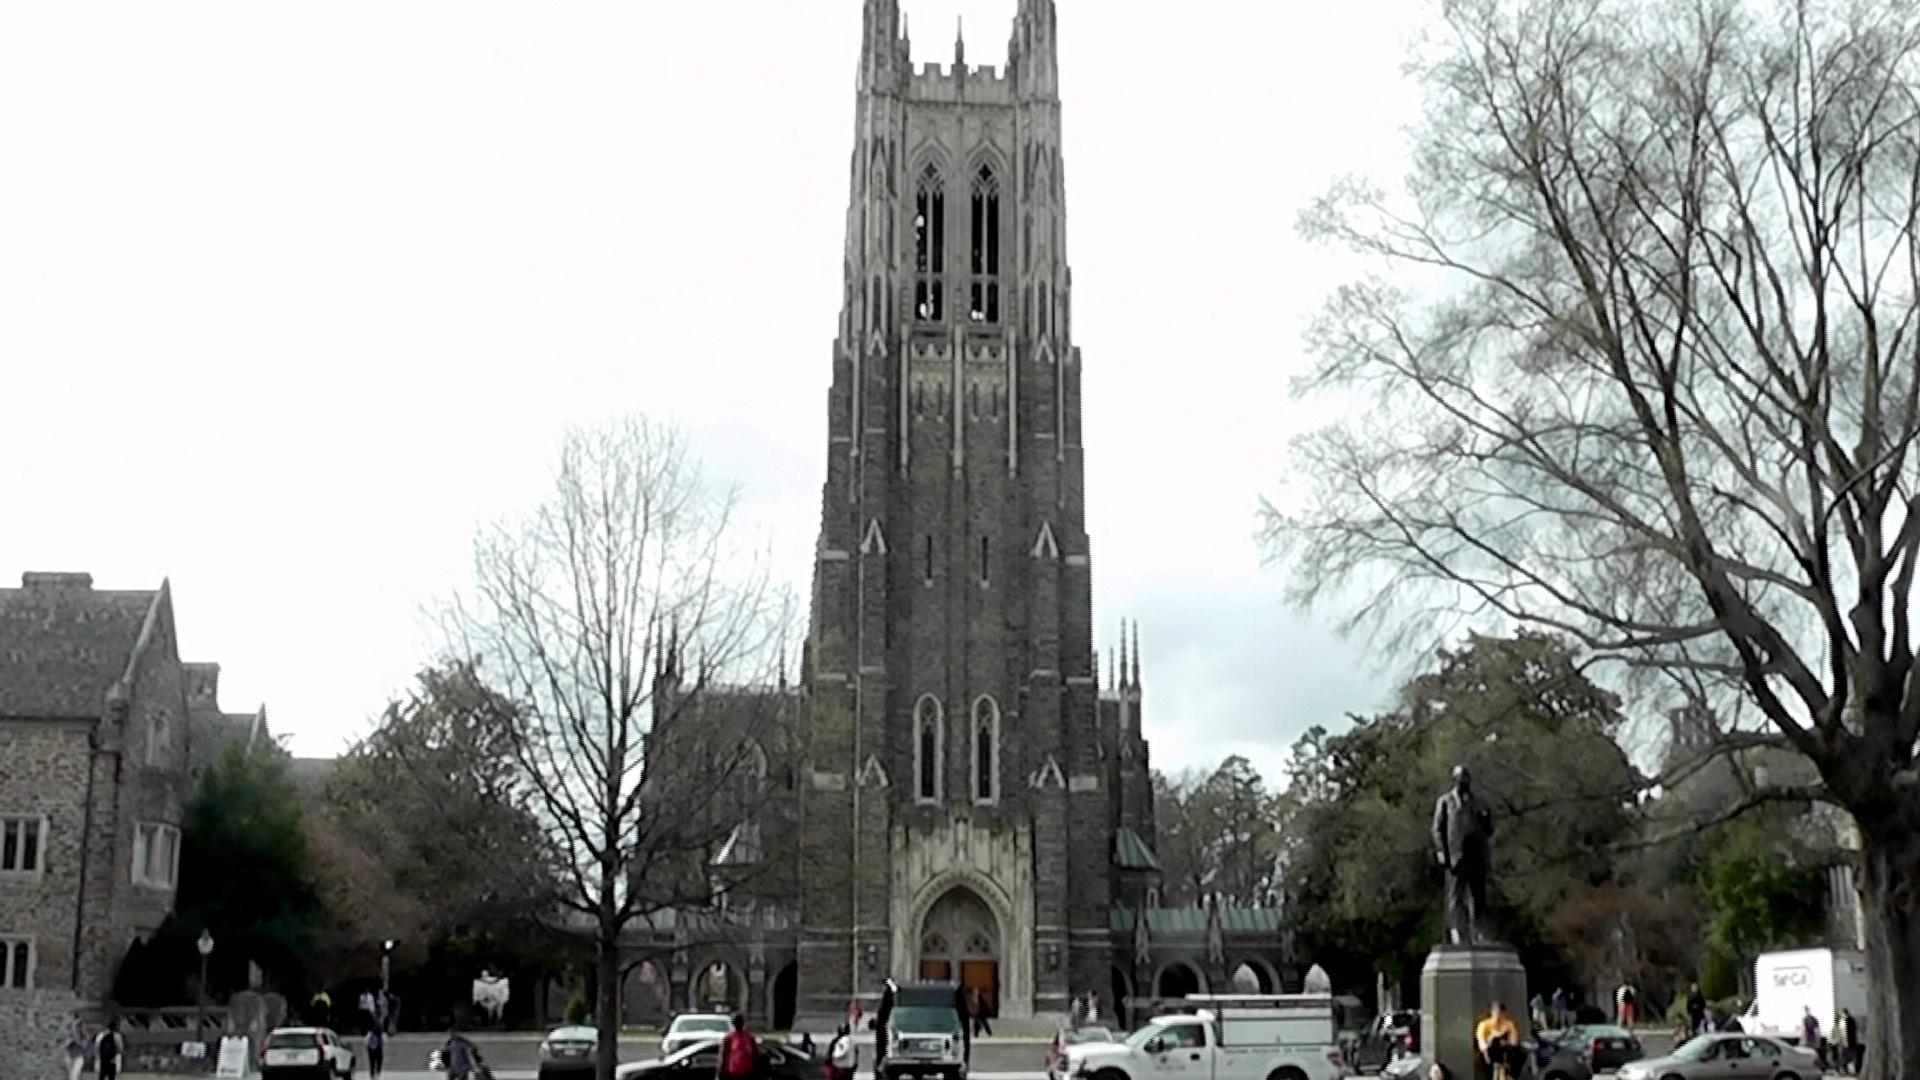 yale muslim This weekend, yale felt the repercussions of president donald trump's executive action barring entry to citizens of seven predominantly muslim countries, though the university quickly rallied behind community members targeted by the ban signed into action friday, the order not only bans the entry.